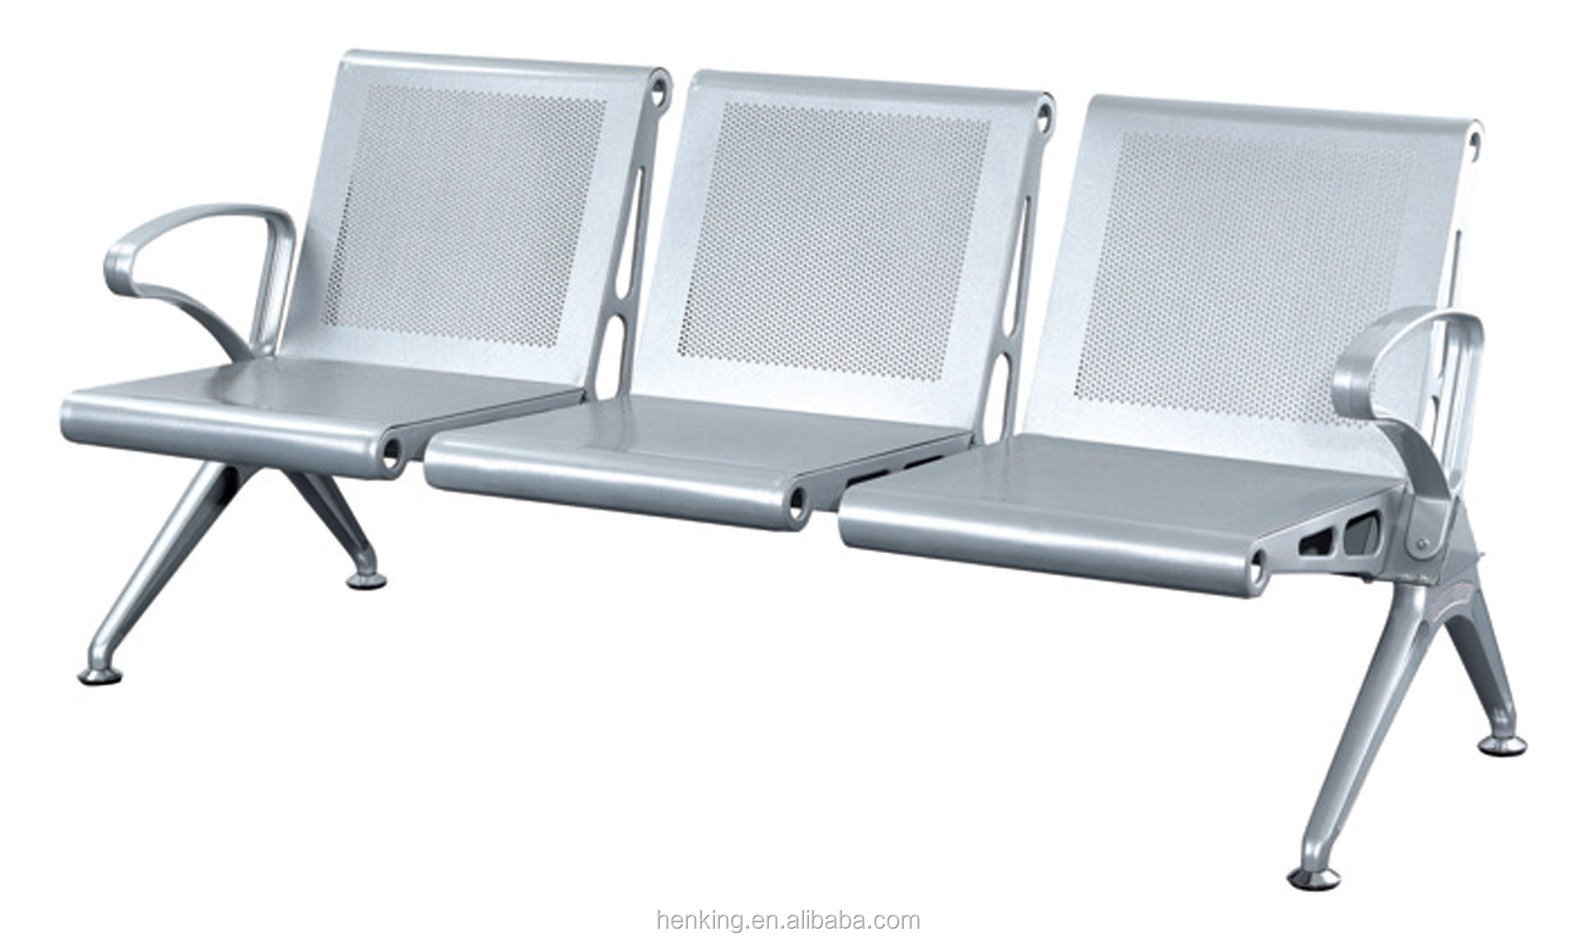 Henking Airport Chair 3 seater Waiting Seats h317 3 Buy Airport Chair Airport Lounge Chairs